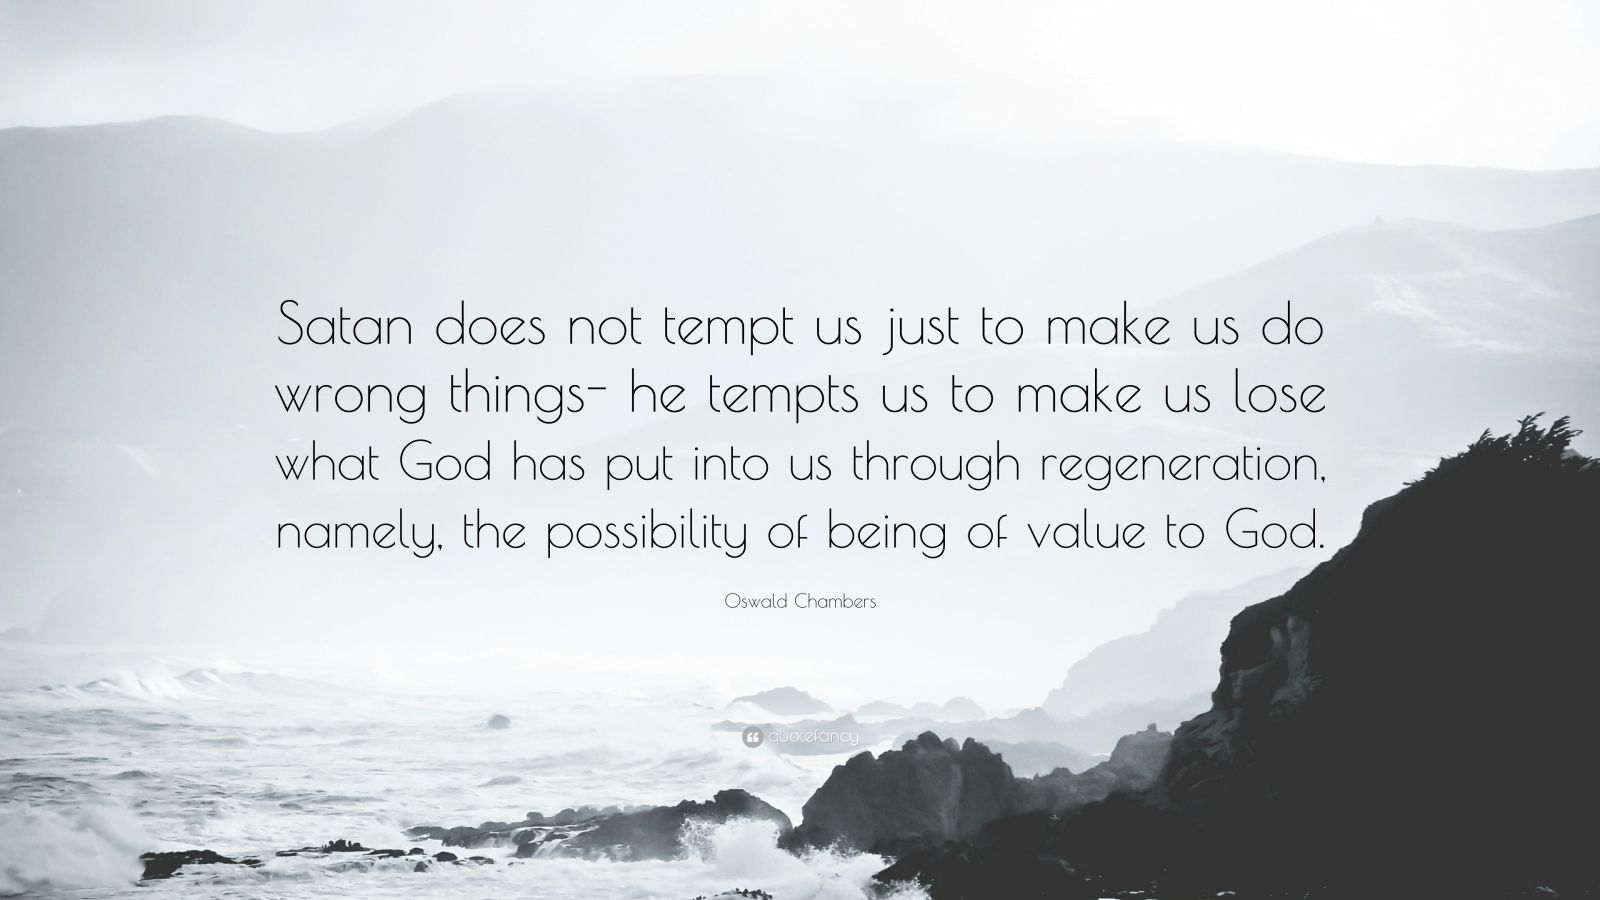 """Oswald Chambers Quote: """"Satan does not tempt us just to make us do wrong things- he tempts us to make us lose what God has put into us through regeneration, namely, the possibility of being of value to God."""""""